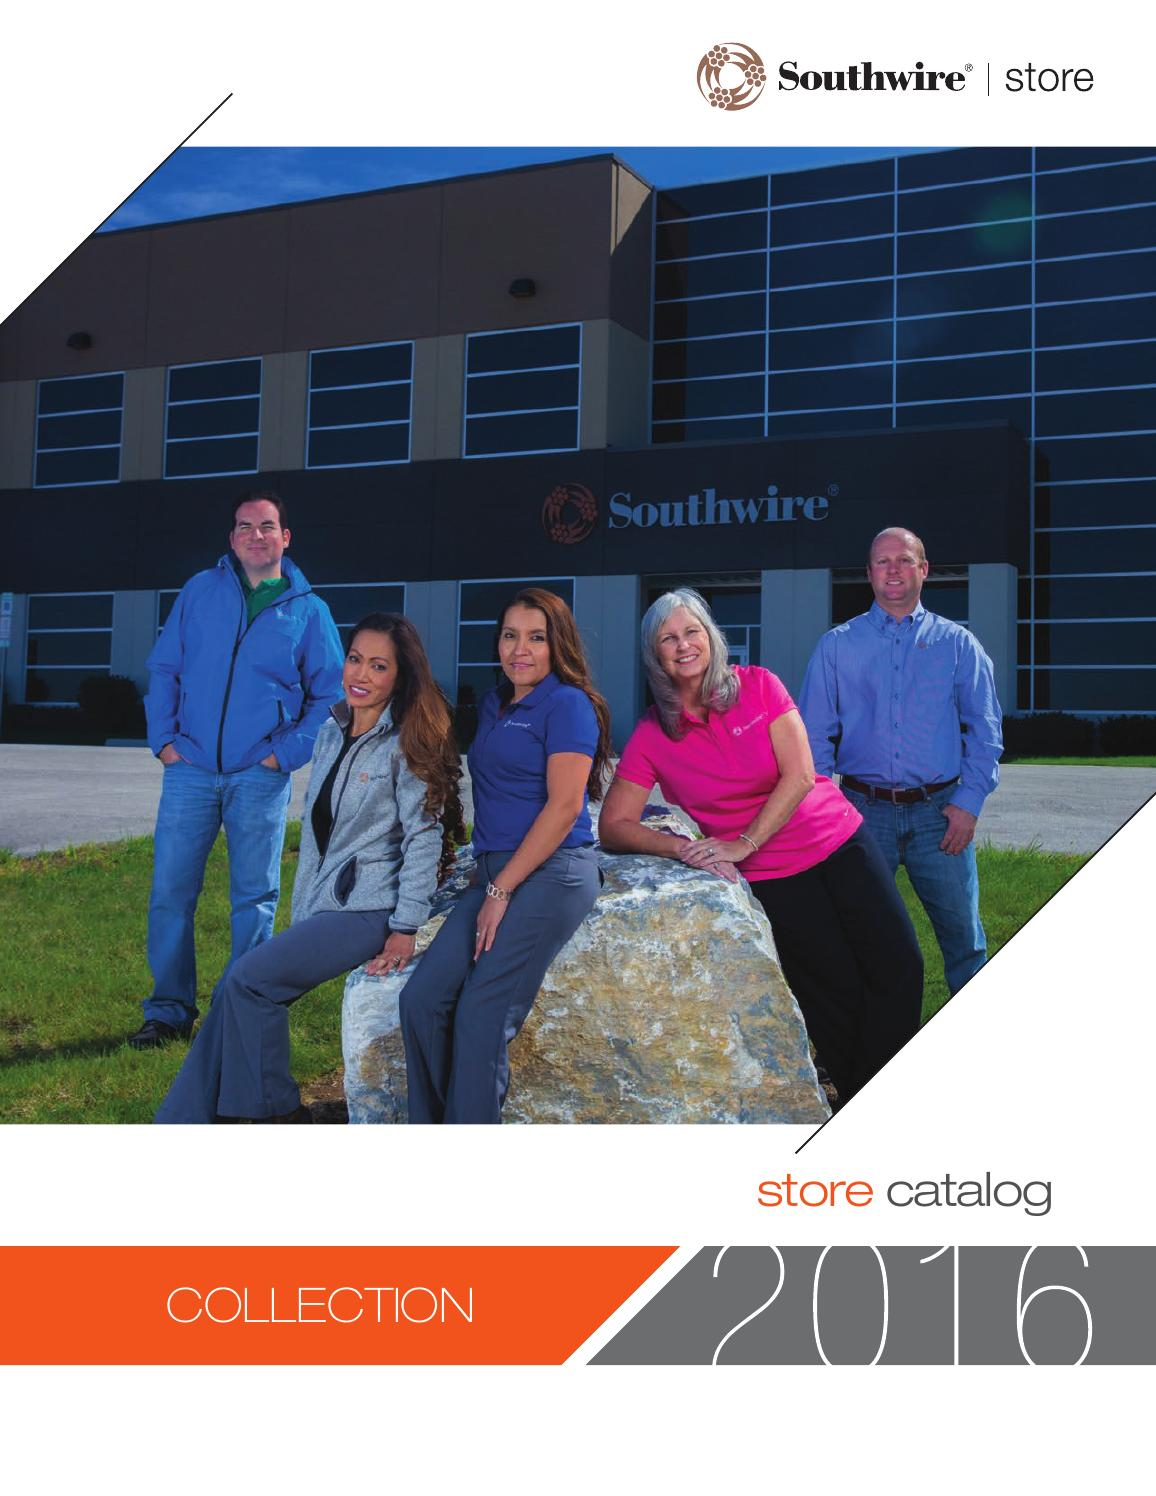 2016 Southwire Store Catalog by Southwire - issuu